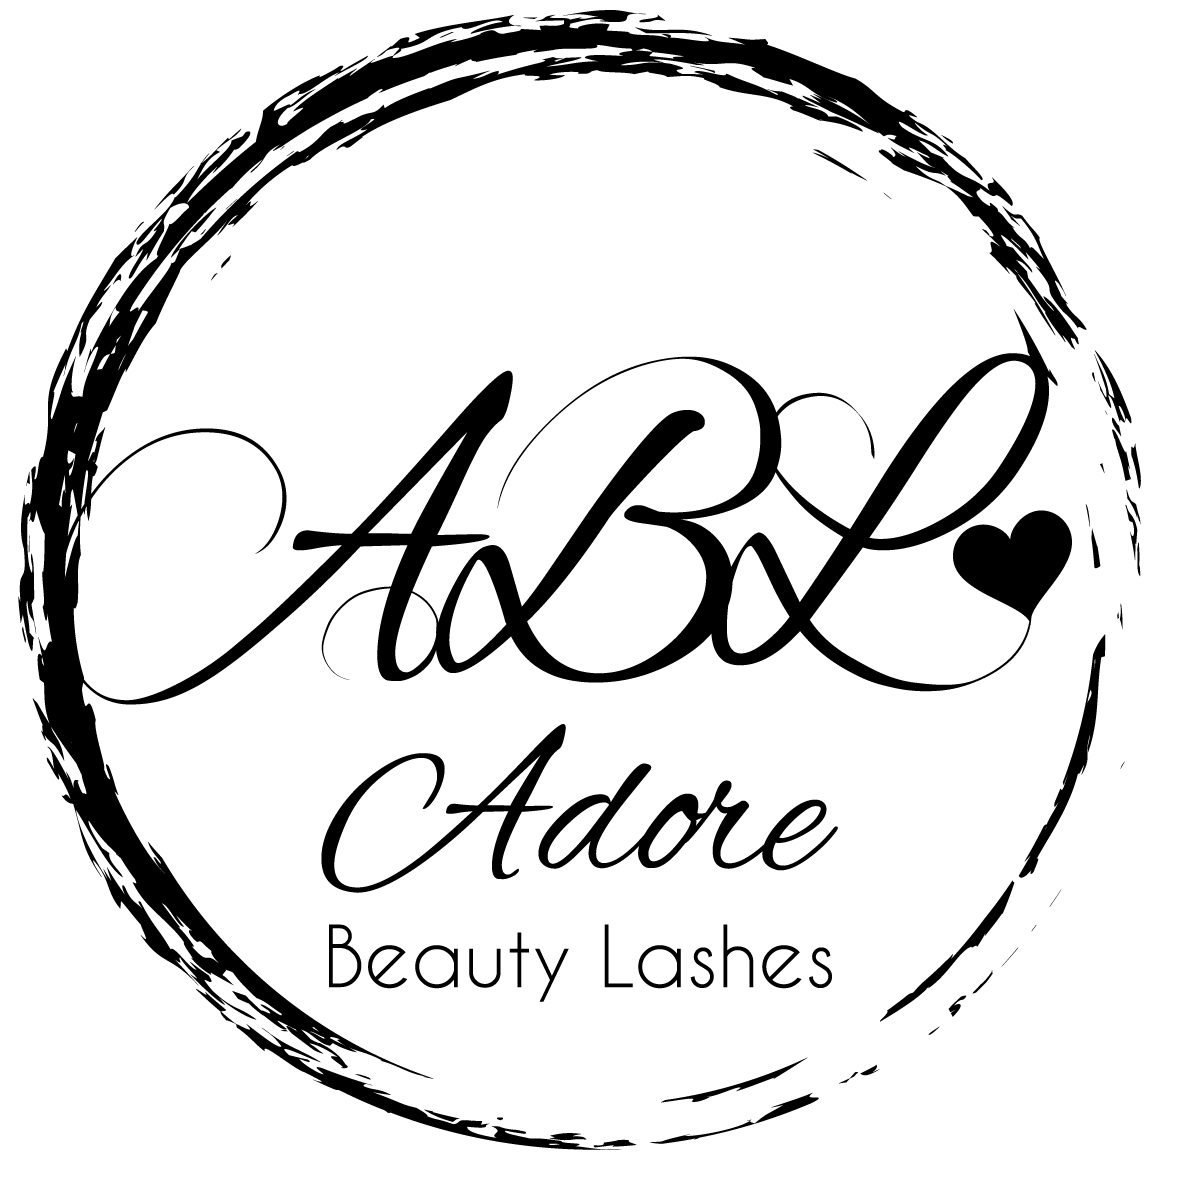 Adore Beauty Lashes logo